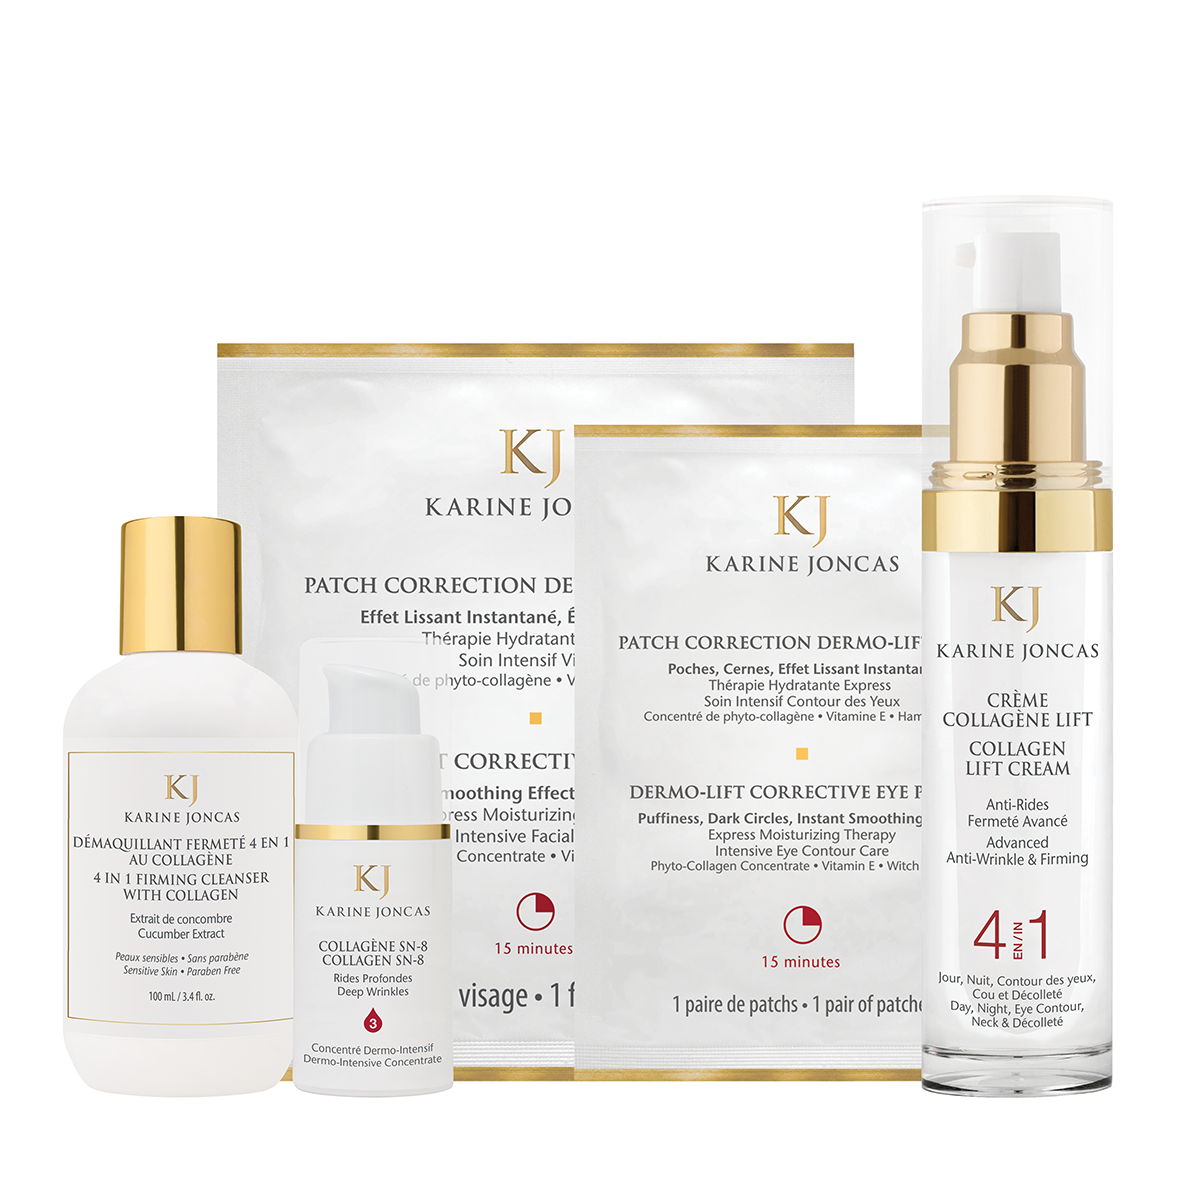 COLLAGEN-LIFT BUNDLE